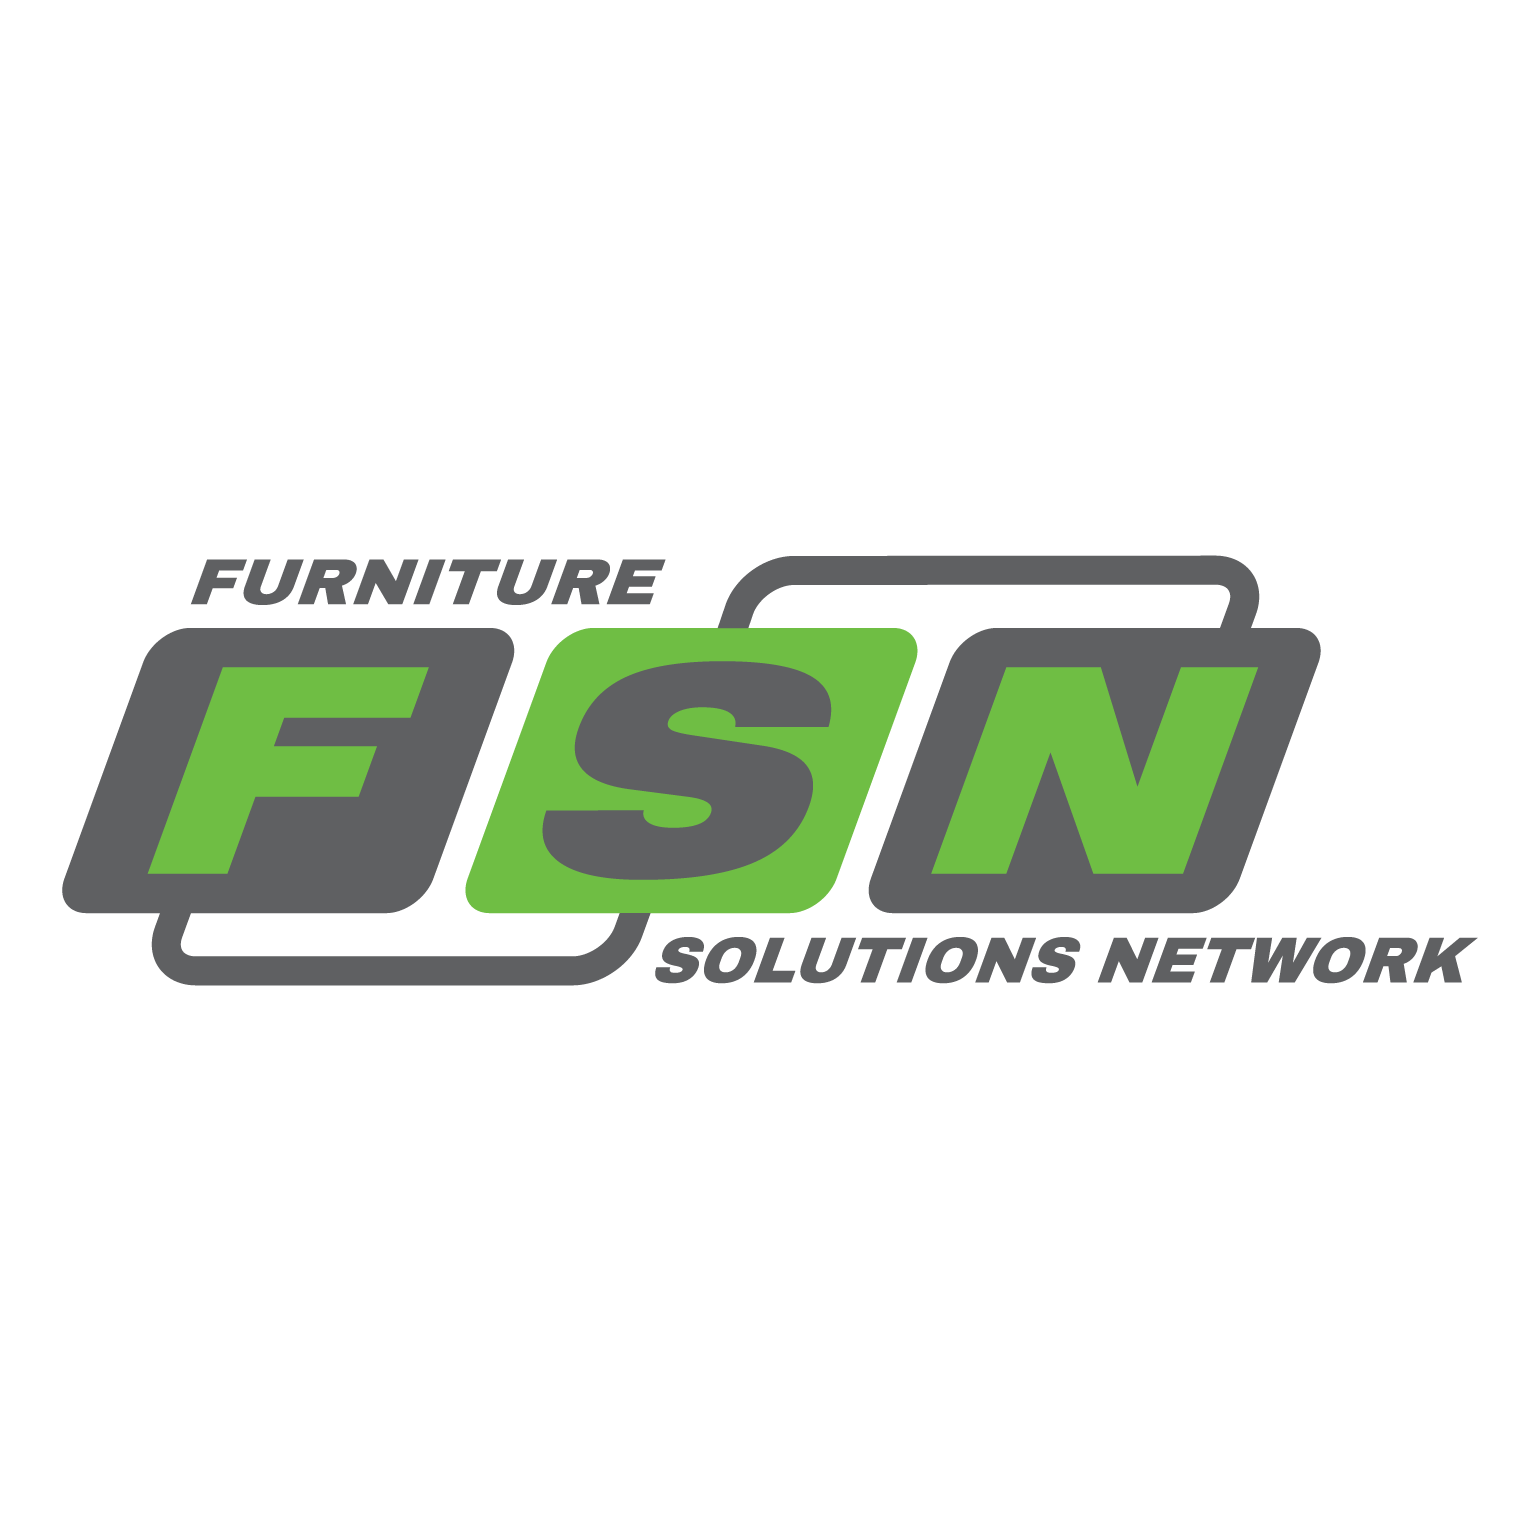 Furniture Solutions Network